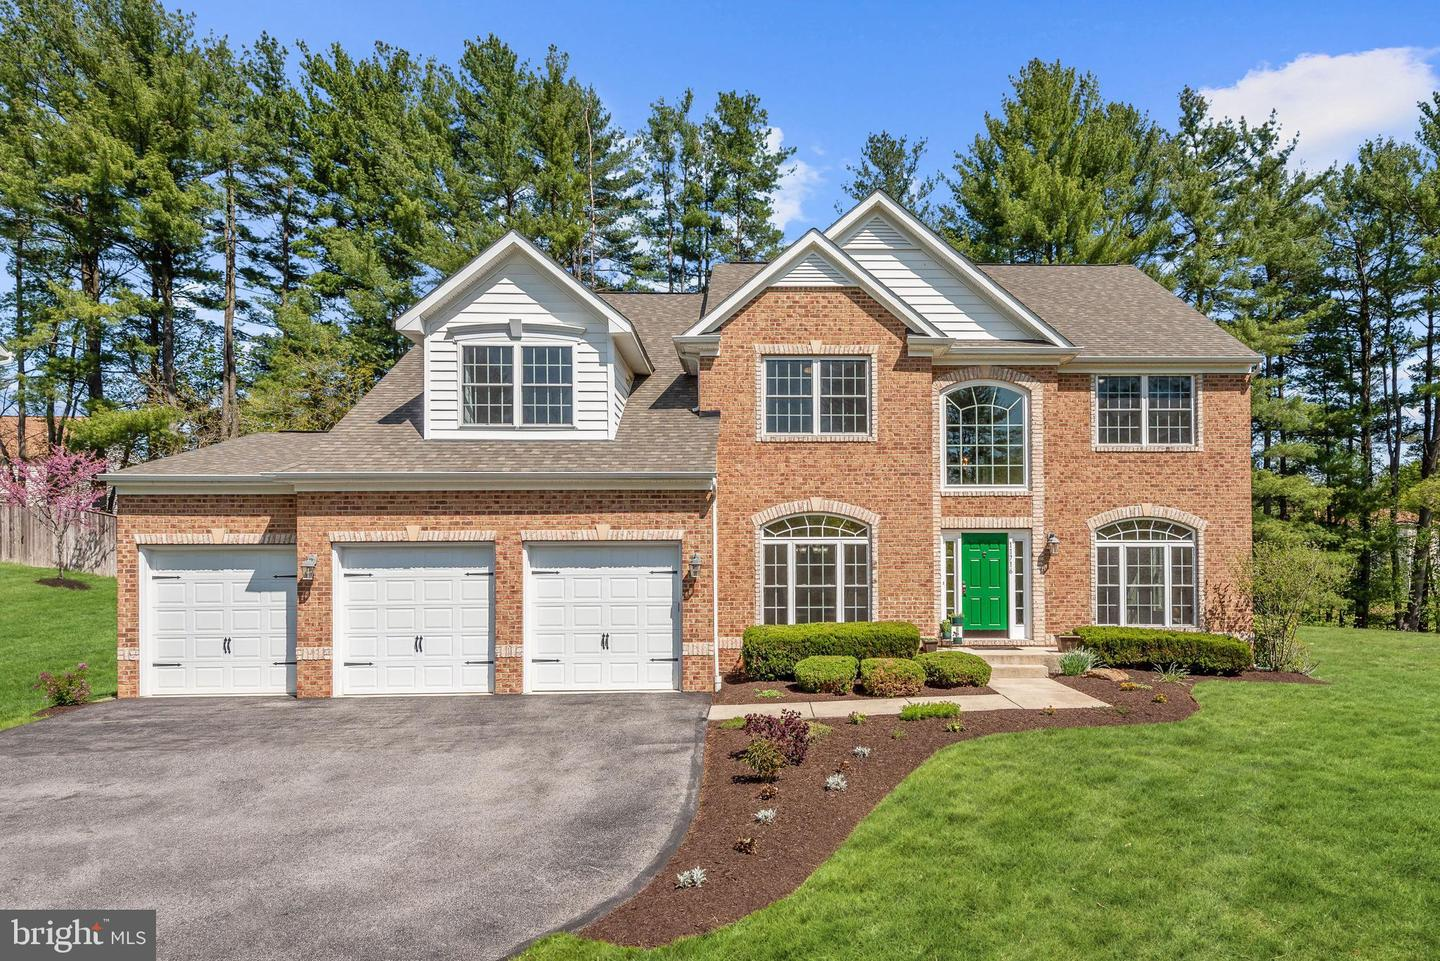 11716 Trotter Crossing Lane   - Clarksville, Maryland 21029